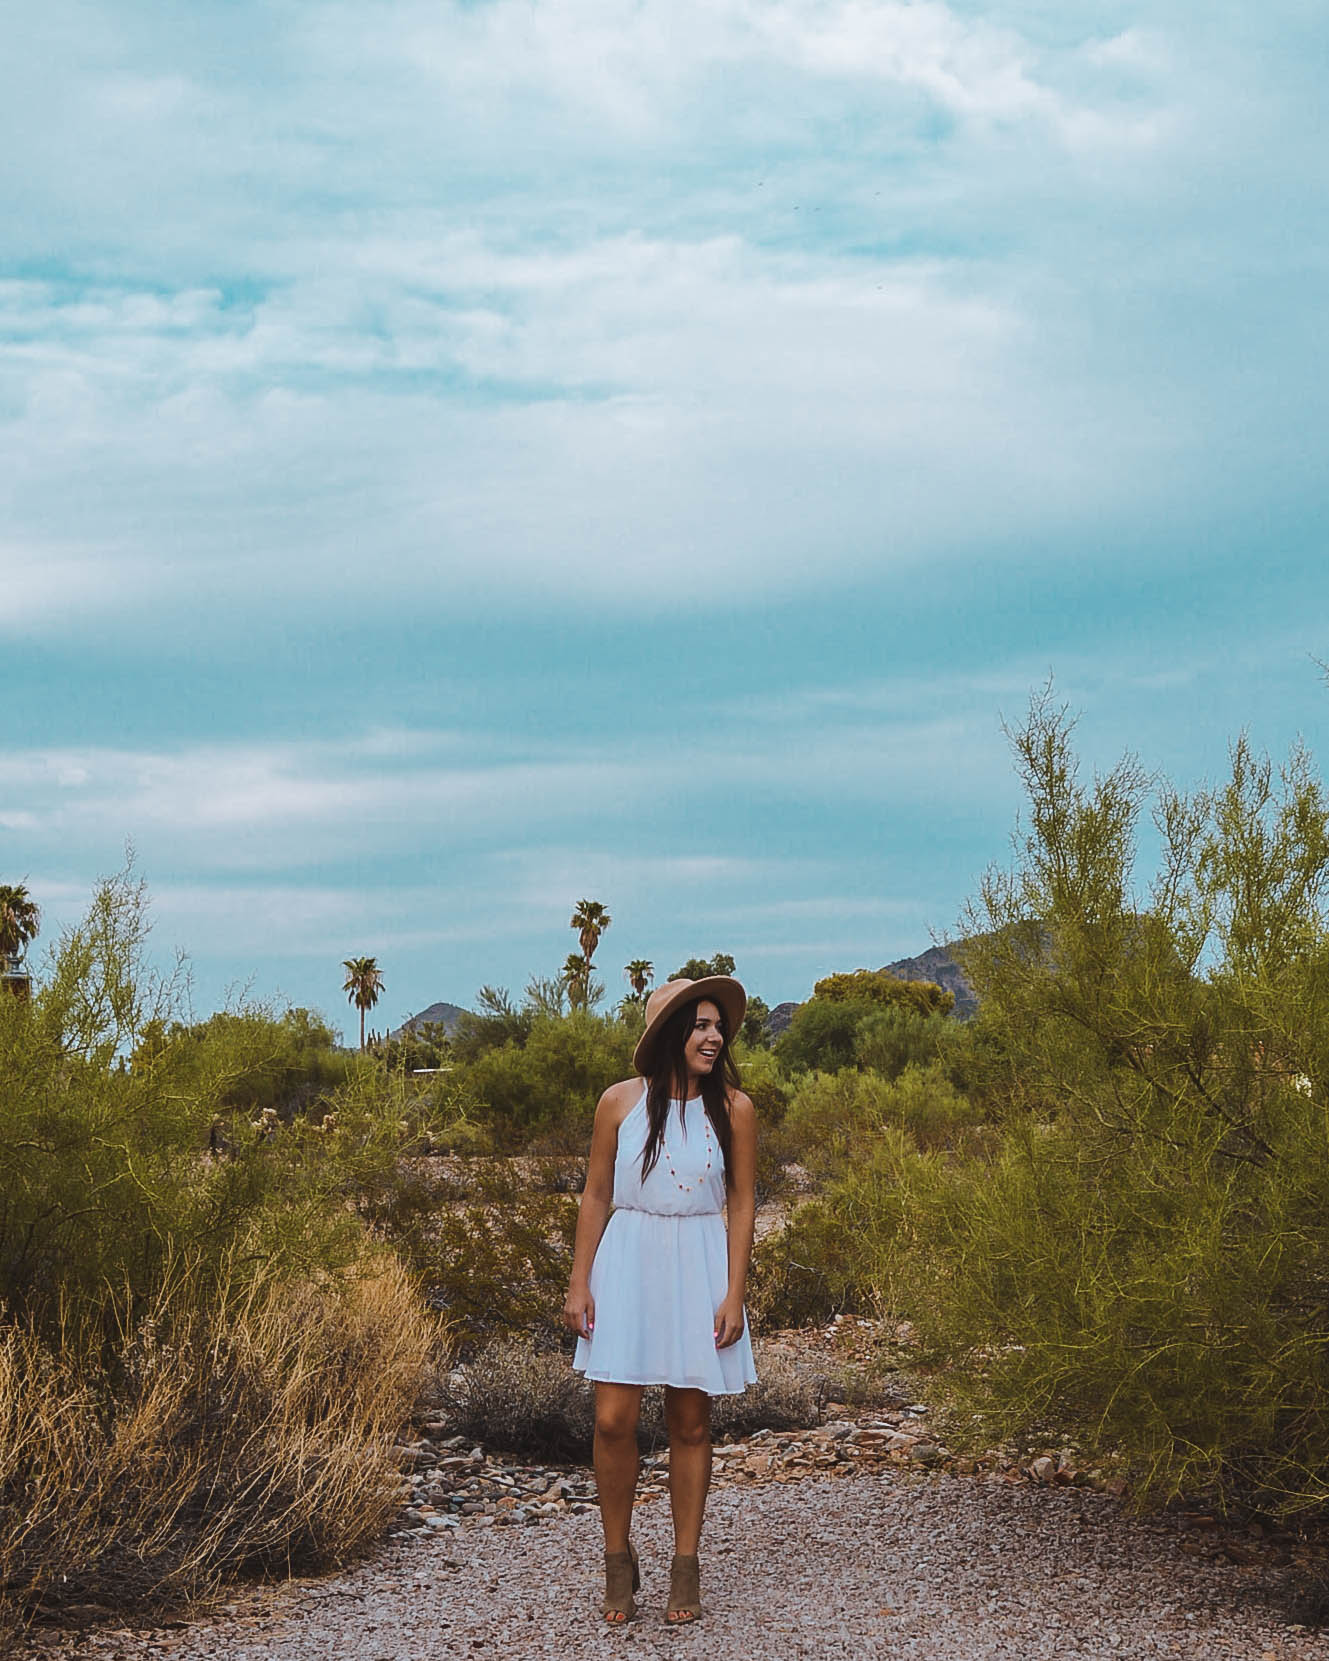 Arizona Travel | 2017 Travel Year in Review + Travel and Blog Goals for 2018 | goseekexplore.com